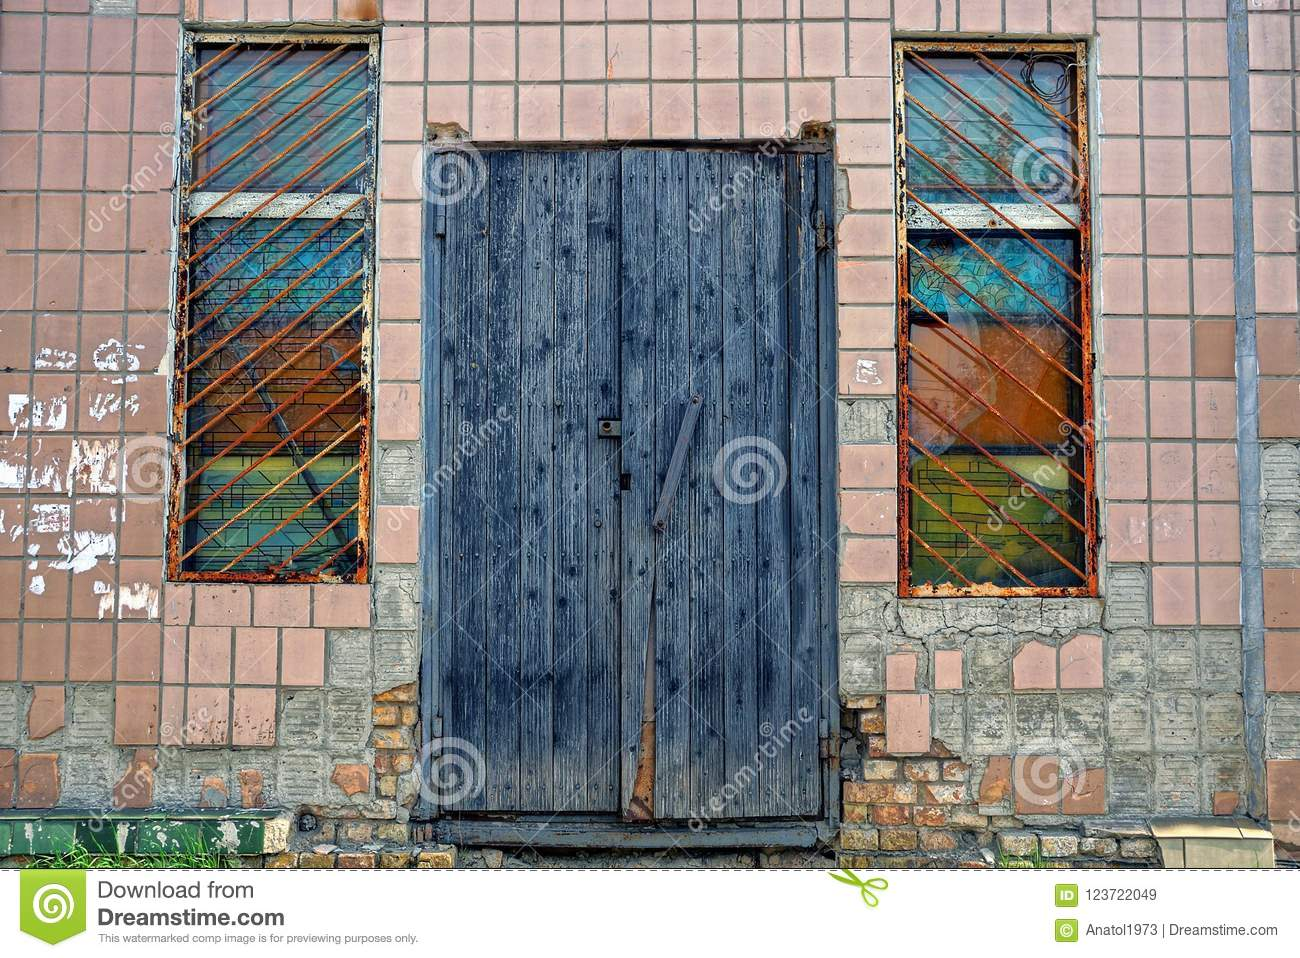 two old windows with a lattice and a gray wooden door on the wall of